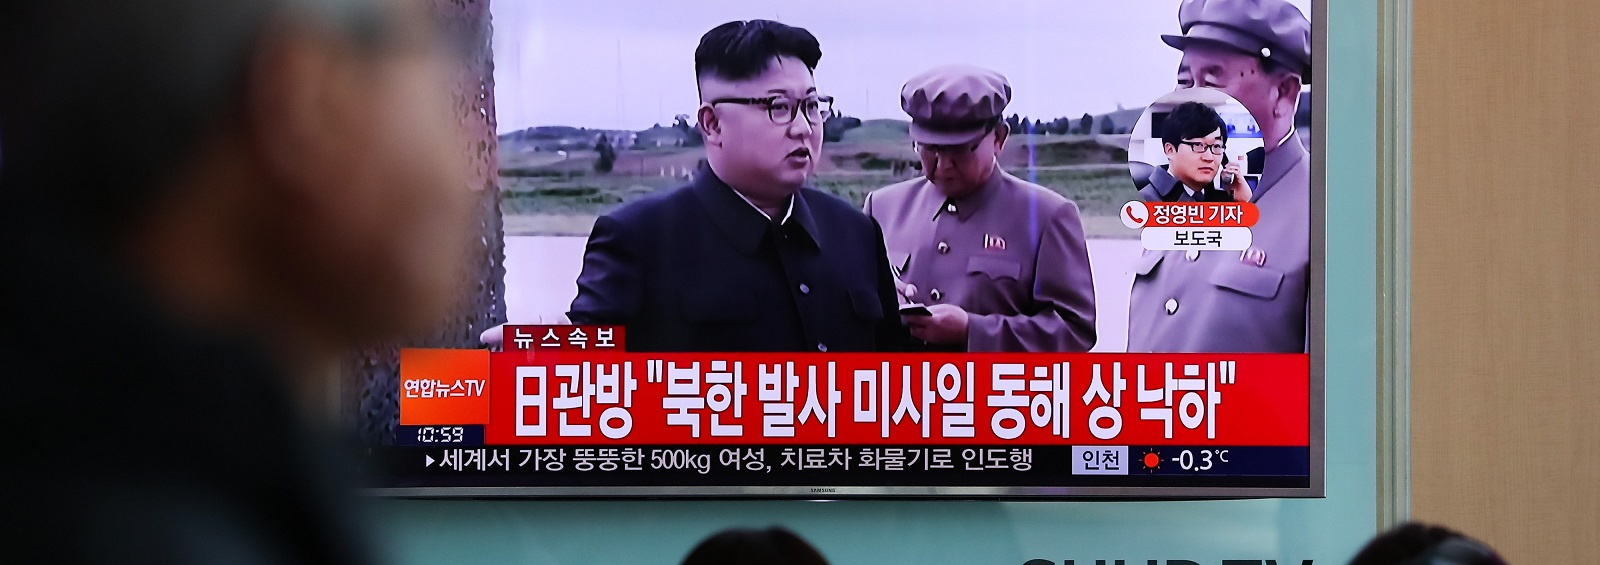 News reports of North Korea's missile launch last month (Photo: Bloomberg/via Getty)